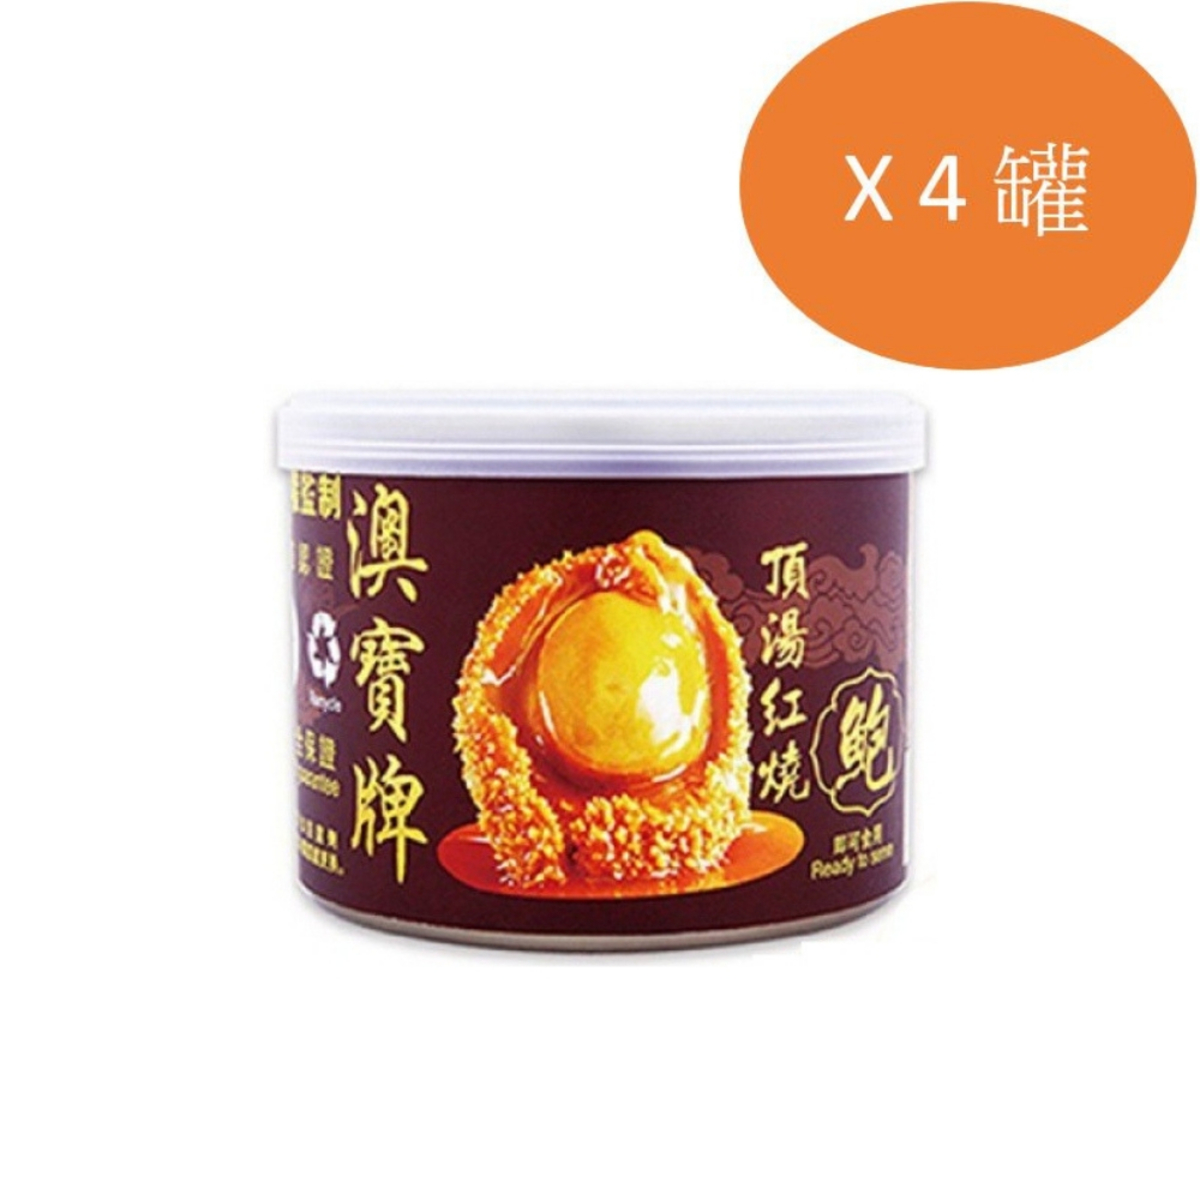 Canned Abalone in Brown Sauce (40g 4pcs) x 4